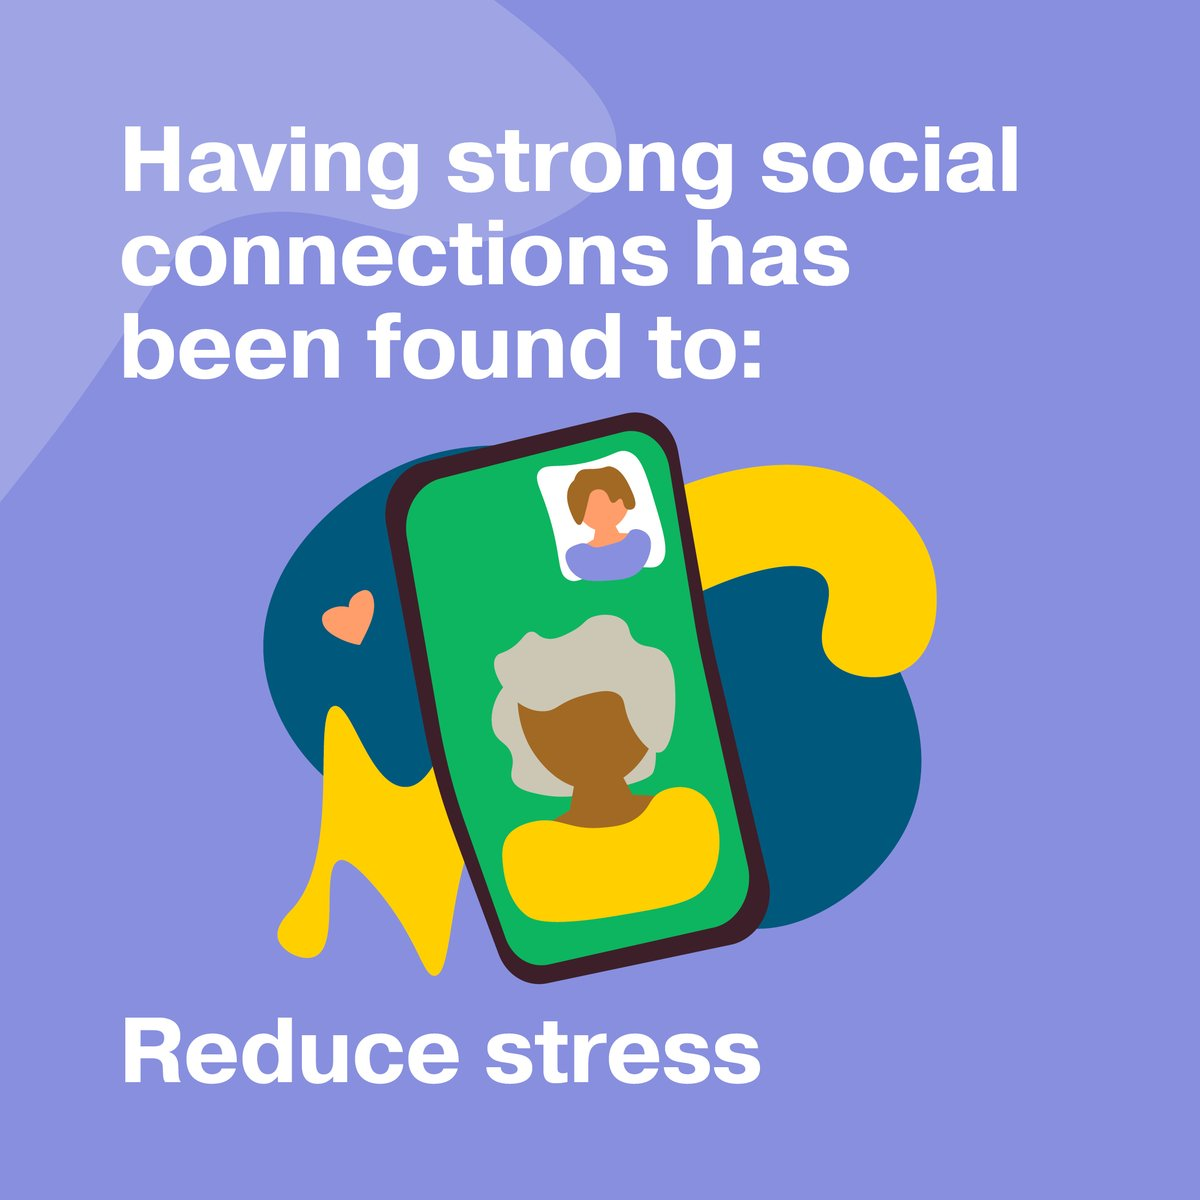 It's less than two weeks until World Mental Health Day. Look out for your mental health and those around you by checking in with friends, family and colleagues, and asking R U OK? For tips on when and how to ask, visit: ruok.org.au/how-to-ask #RUOK #ruokday #WMHD2021